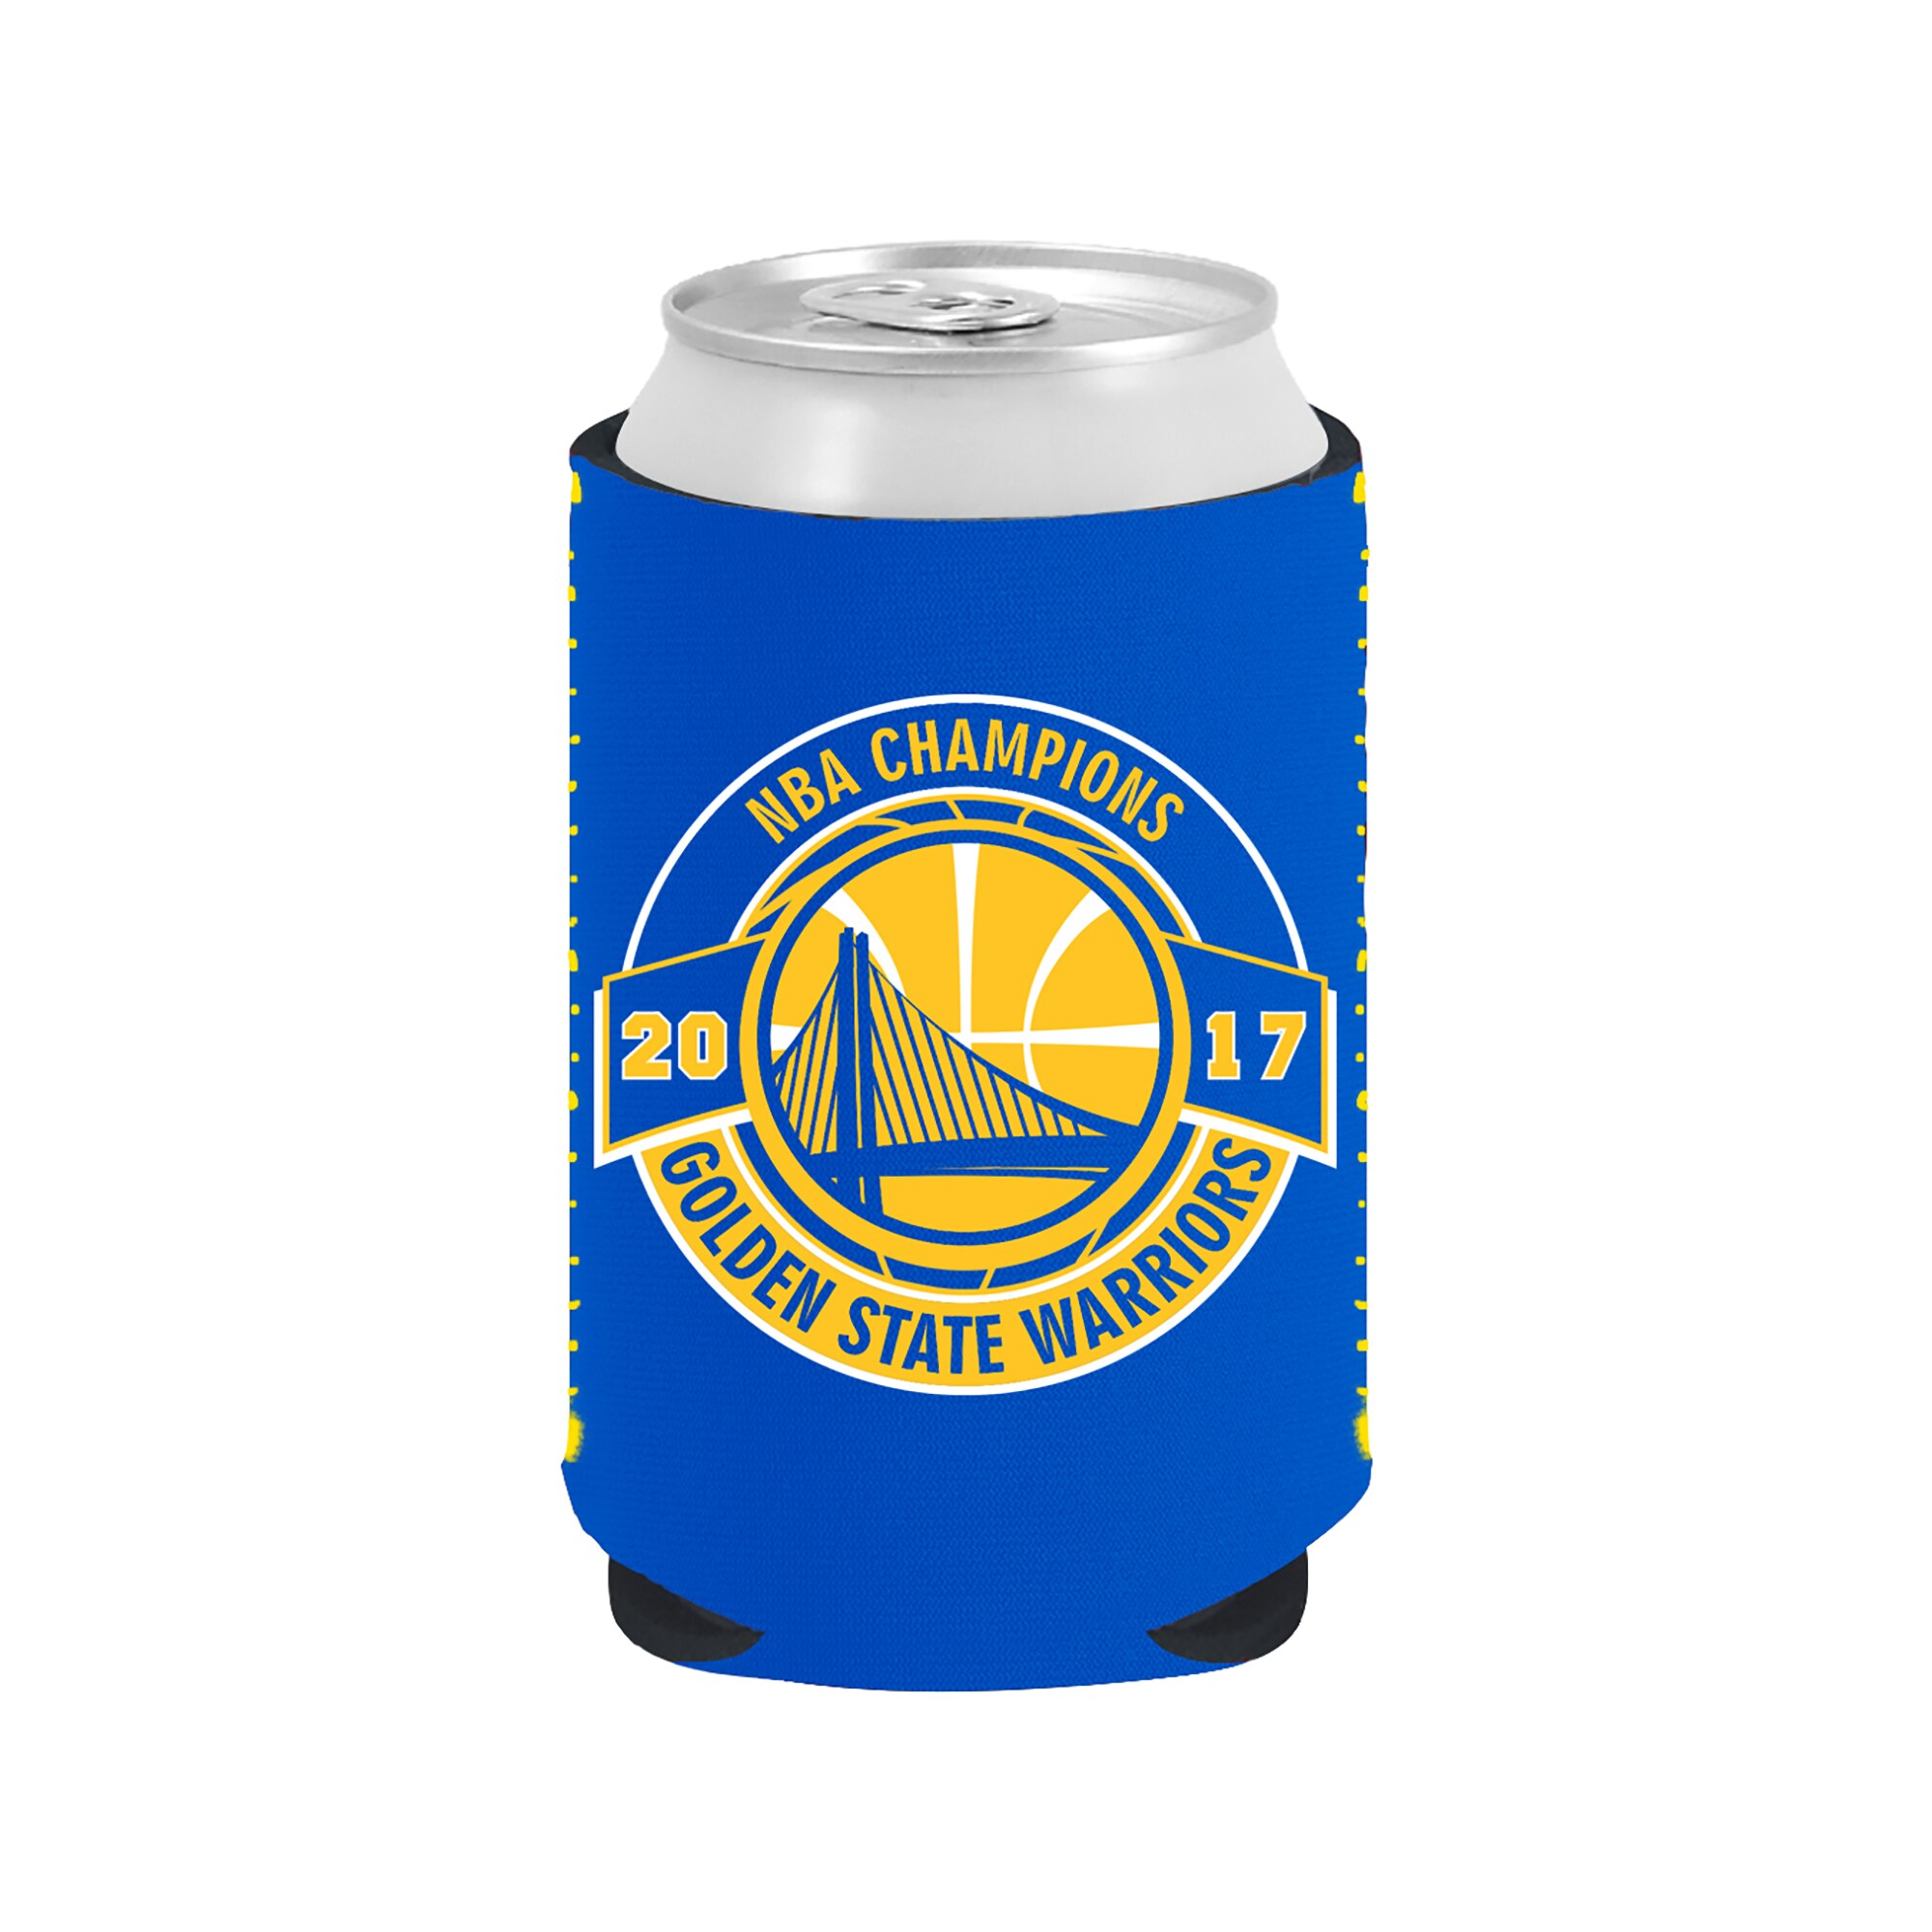 Golden State Warriors 2017 NBA Finals Champions Collapsible Can Cooler